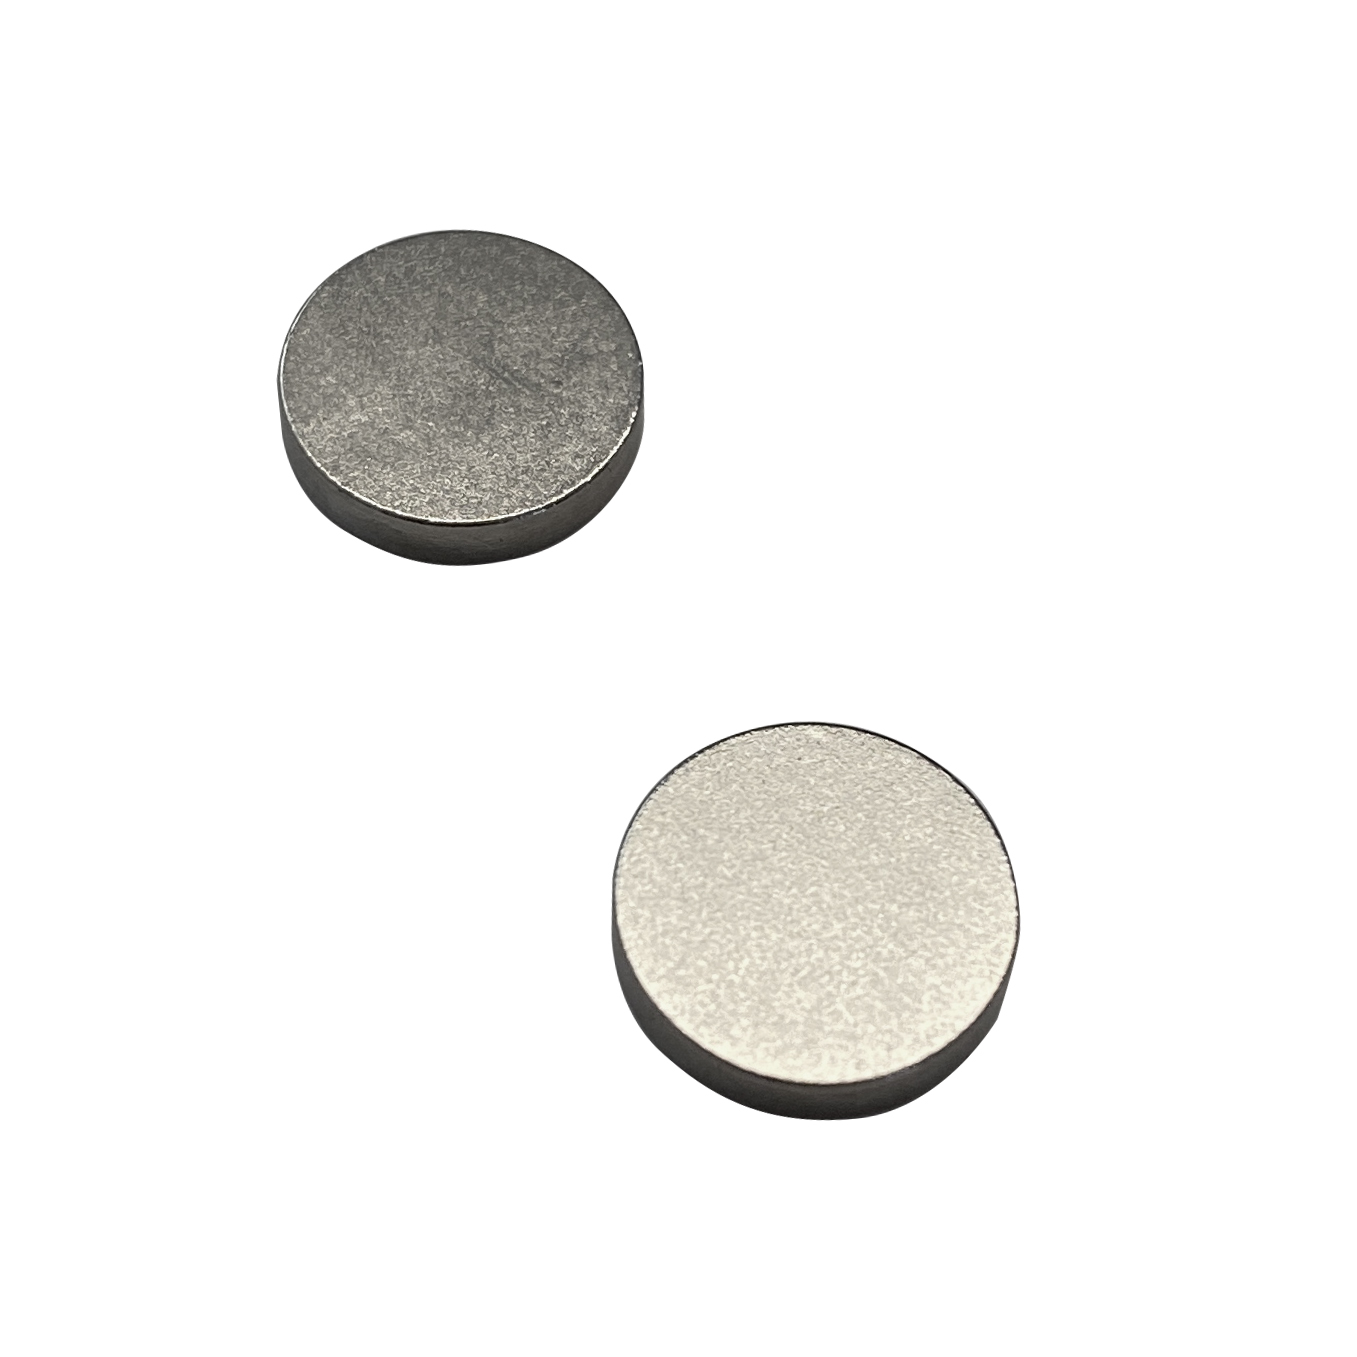 Easylinx Magnets